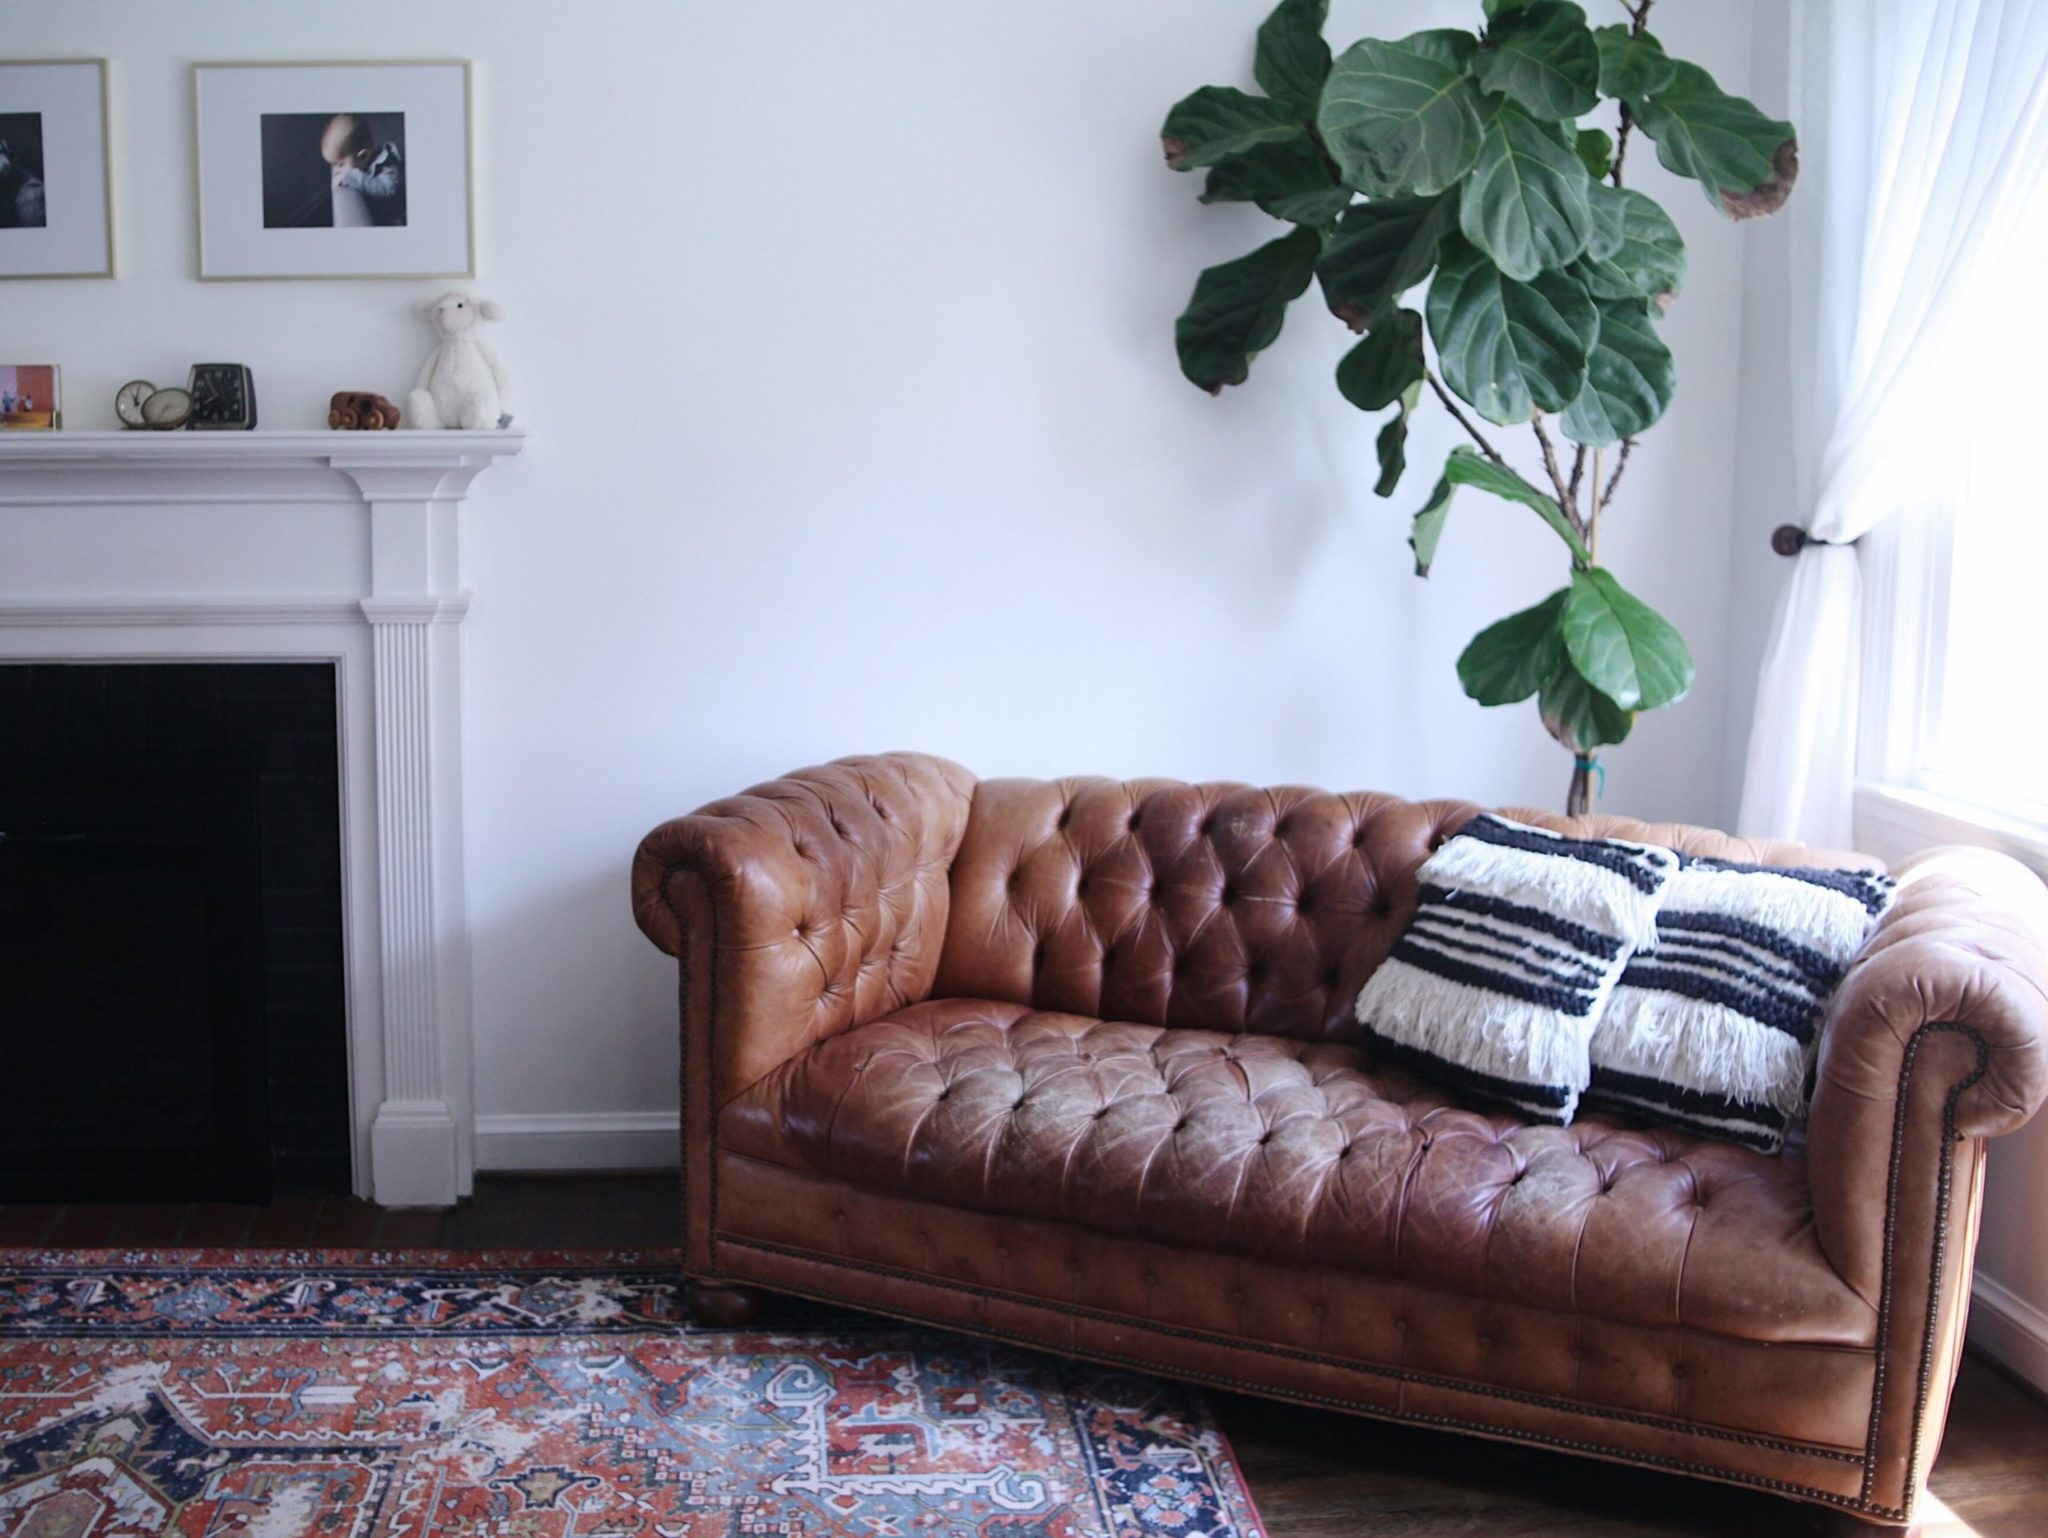 Look Inside My Home: An Eclectic, Memento-Filled Home in Silver Spring